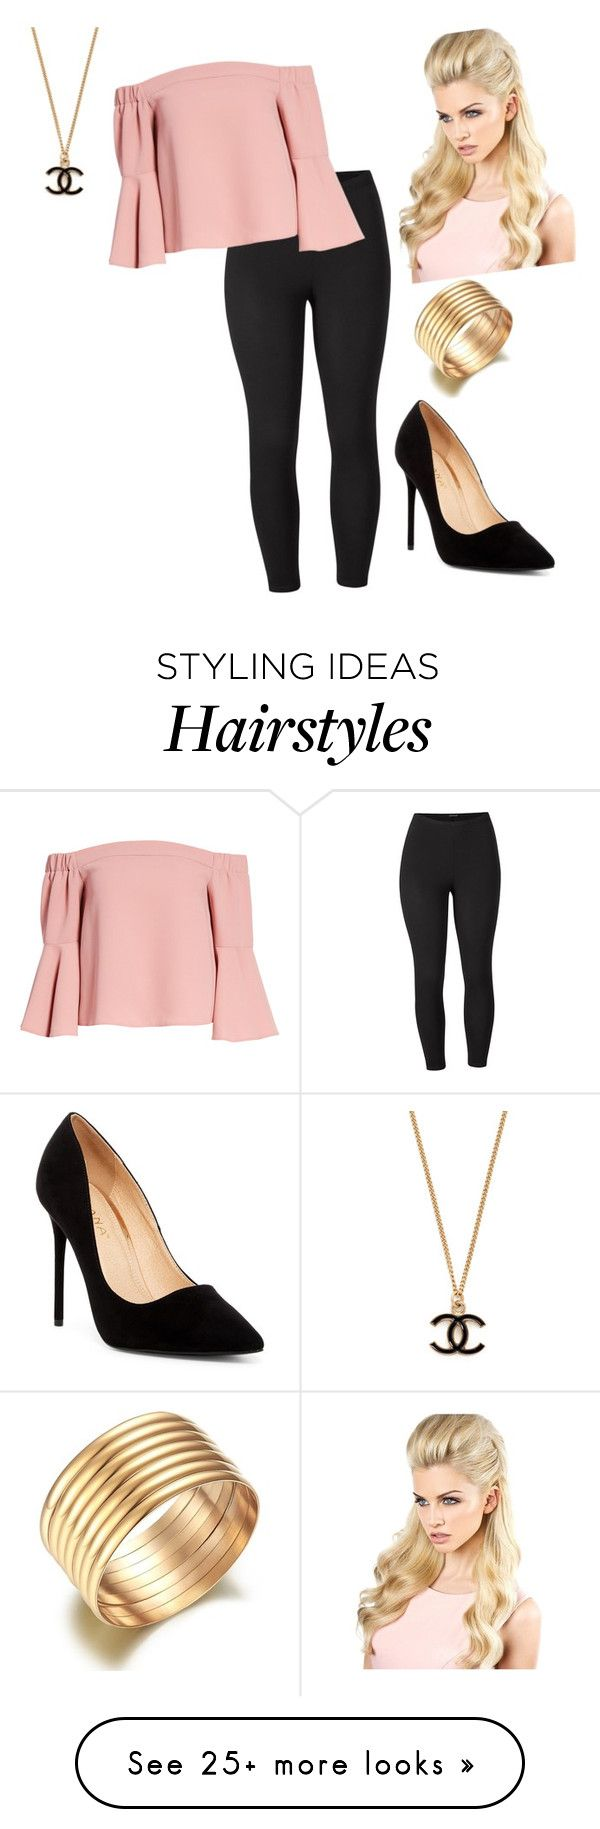 """Untitled #2742"" by vireheart on Polyvore featuring Venus, Topshop, Liliana and plus size clothing"